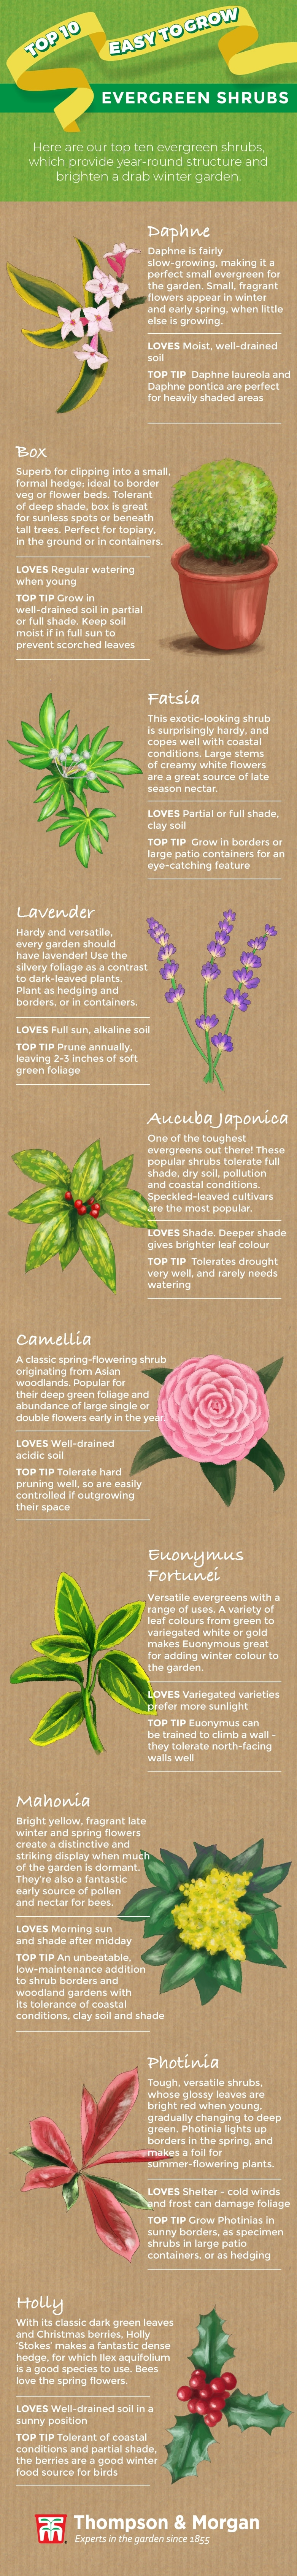 Top 10 Easy to Grow Evergreen Shrubs Infographic